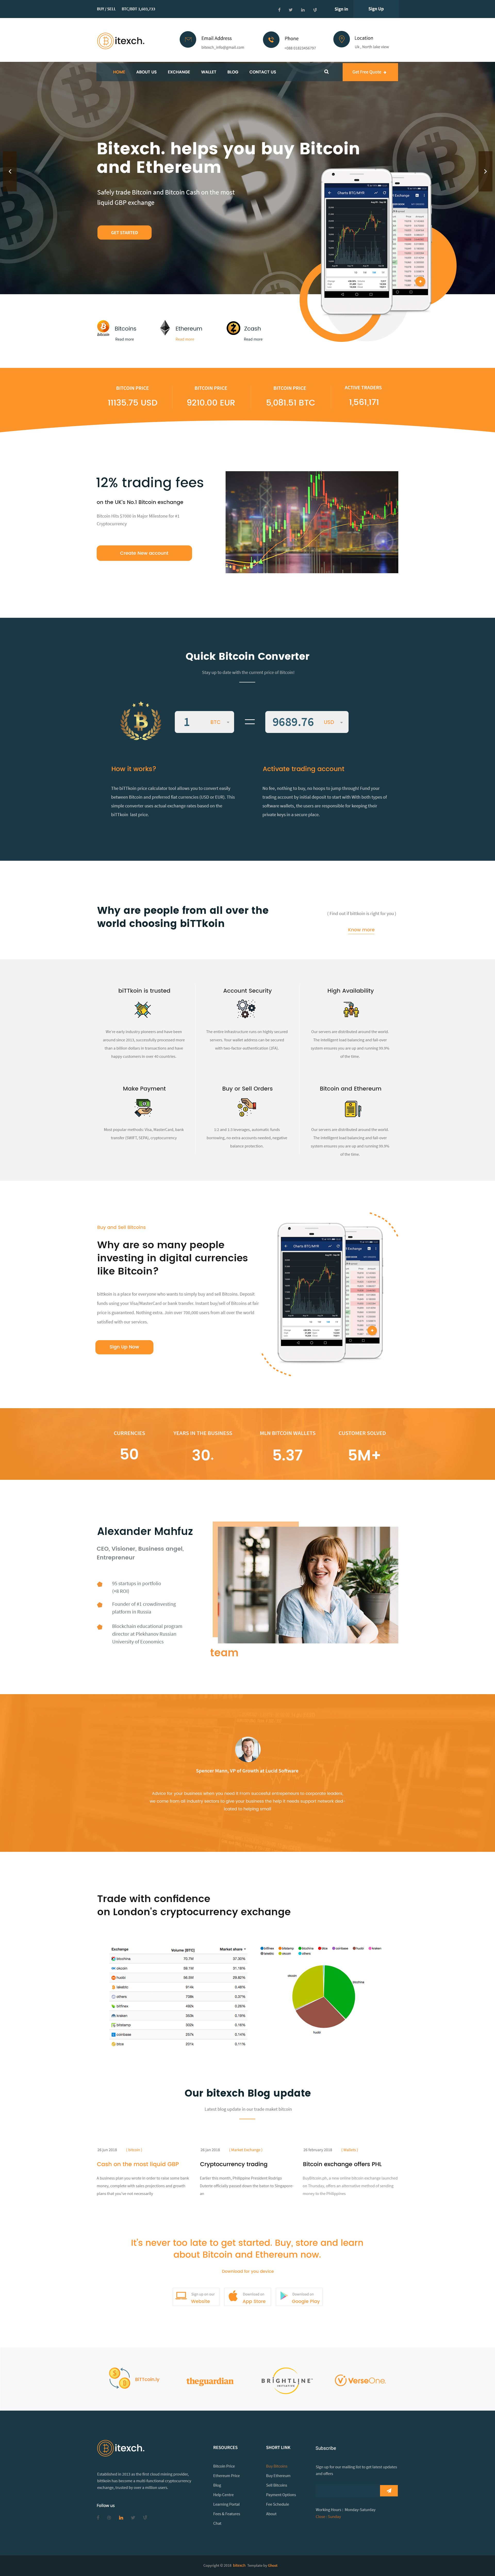 Digital Currency And Bitcoins Psd Template Digital Marketing Design Psd Templates Digital